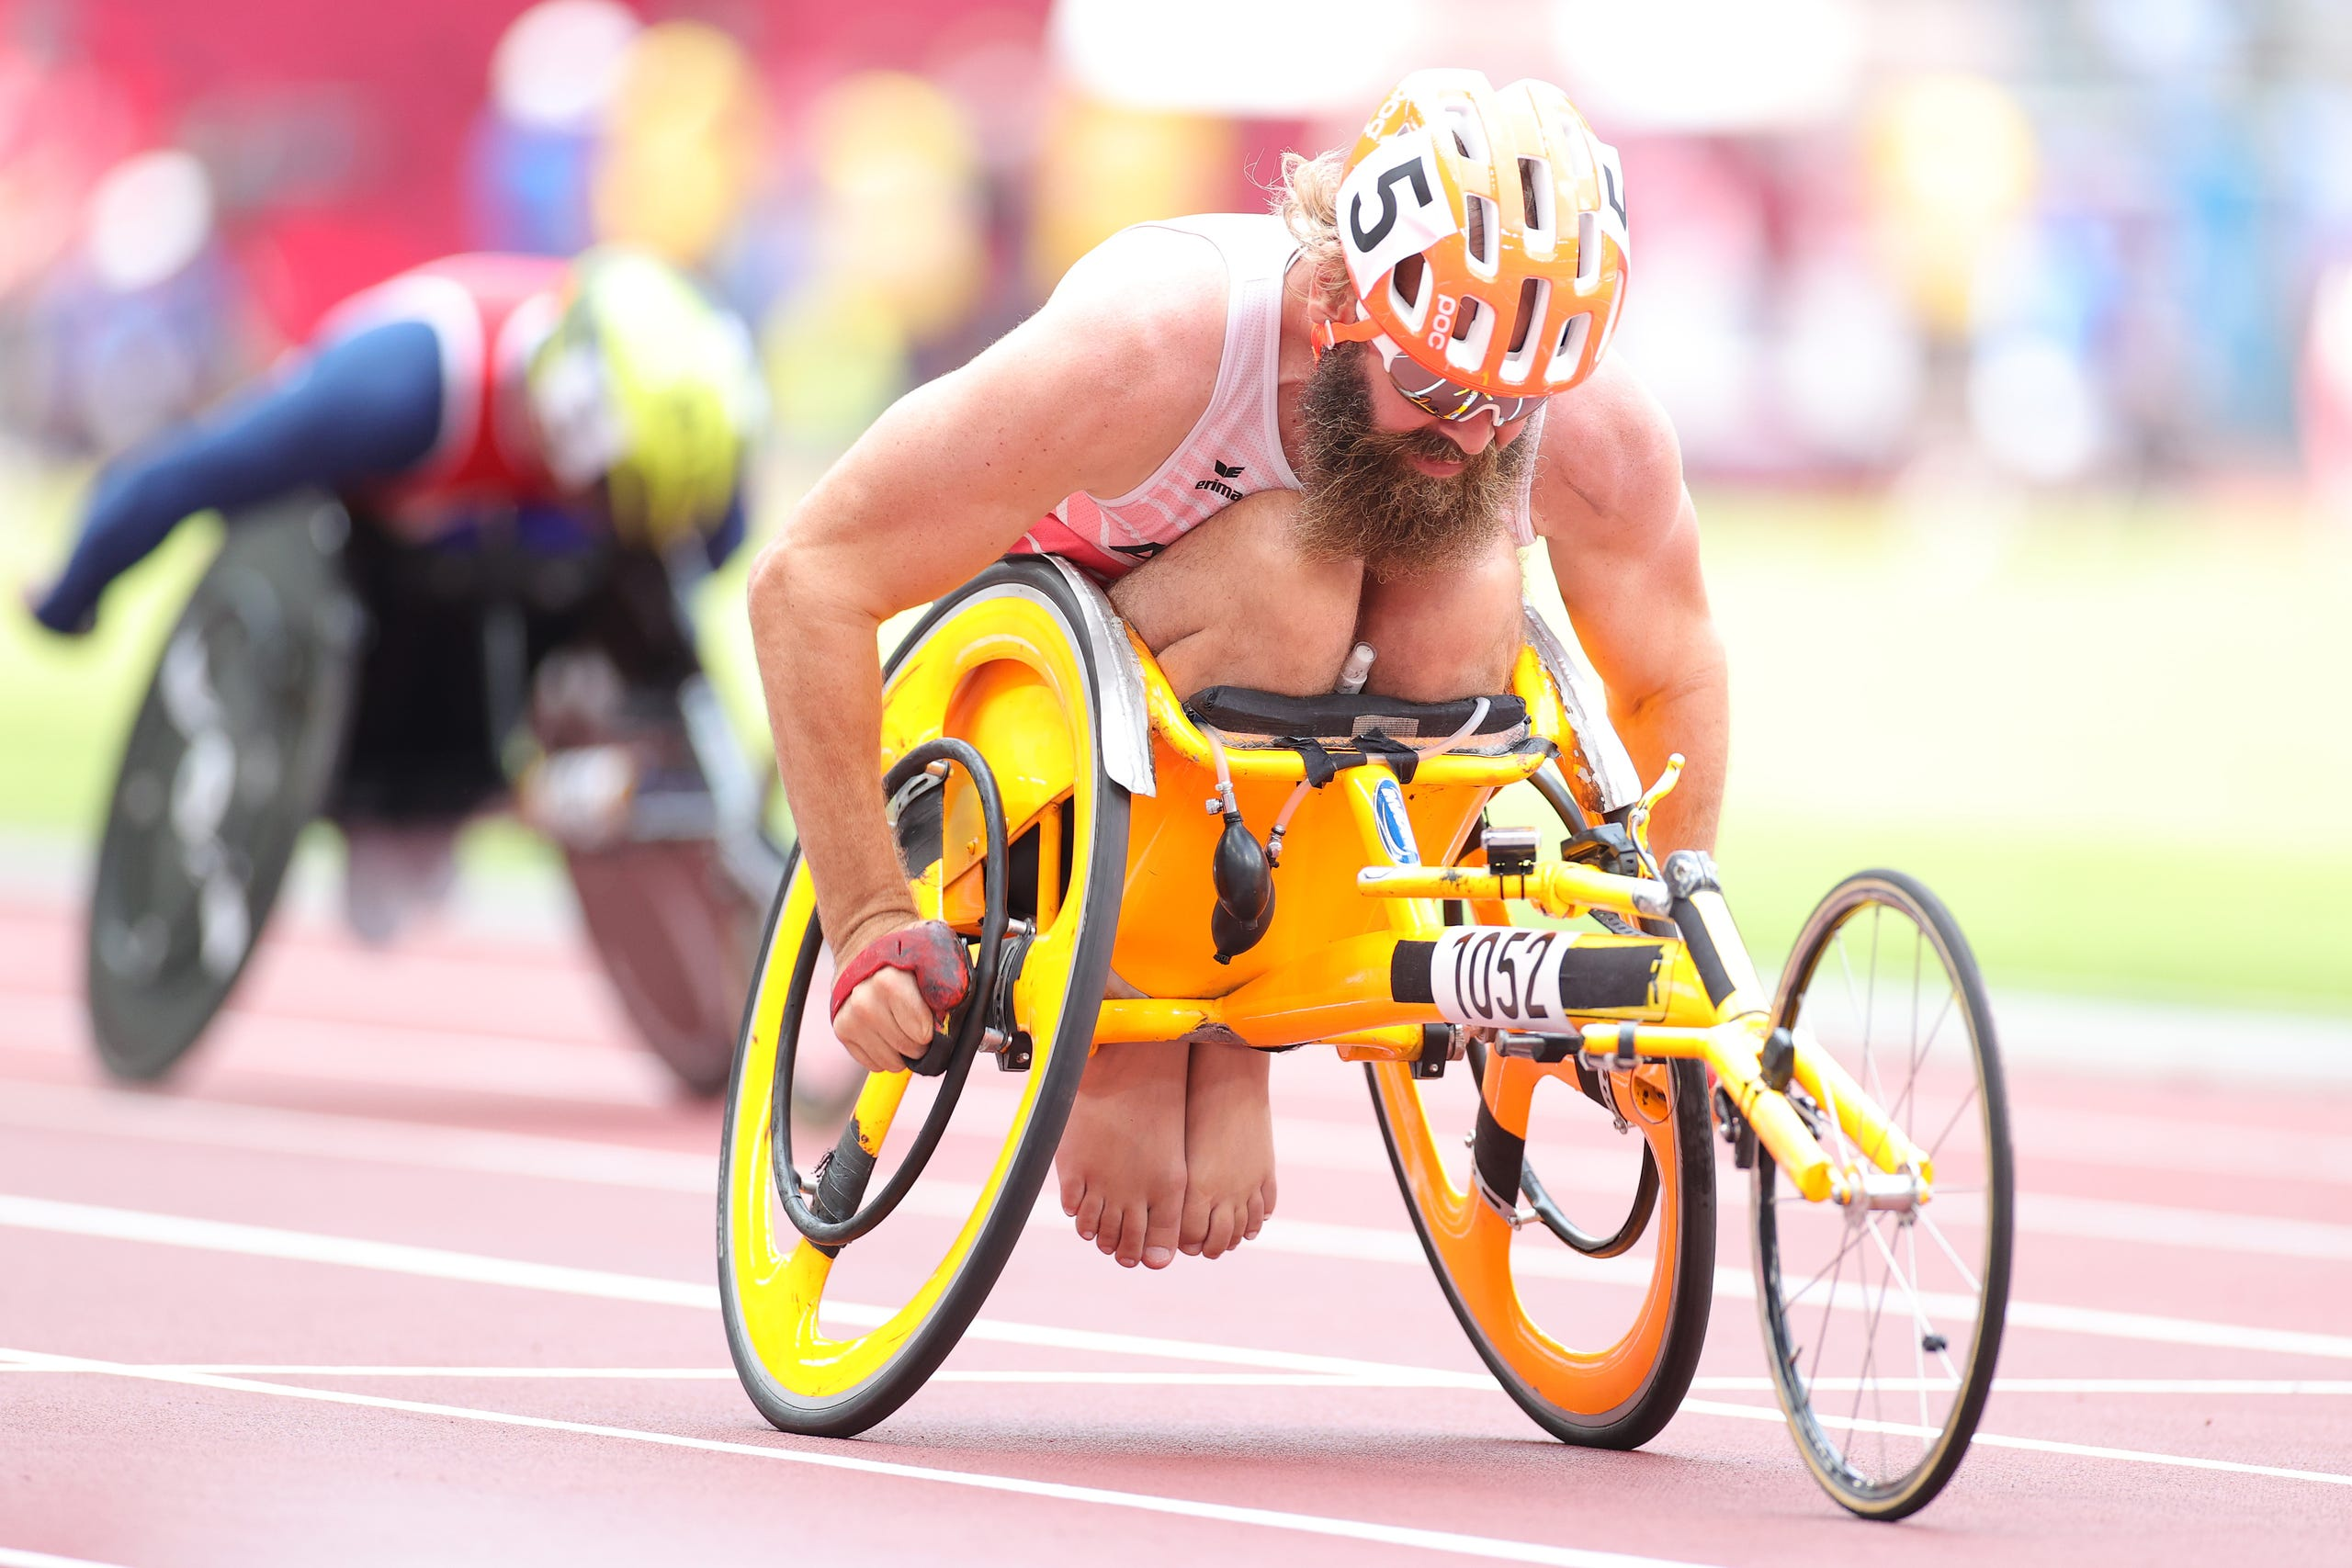 August 27, 2021: Thomas  Geierspichler of Team Austria competes in Men's 400-meter - T51 heat on Day 3 of the Tokyo 2020 Paralympic Games.